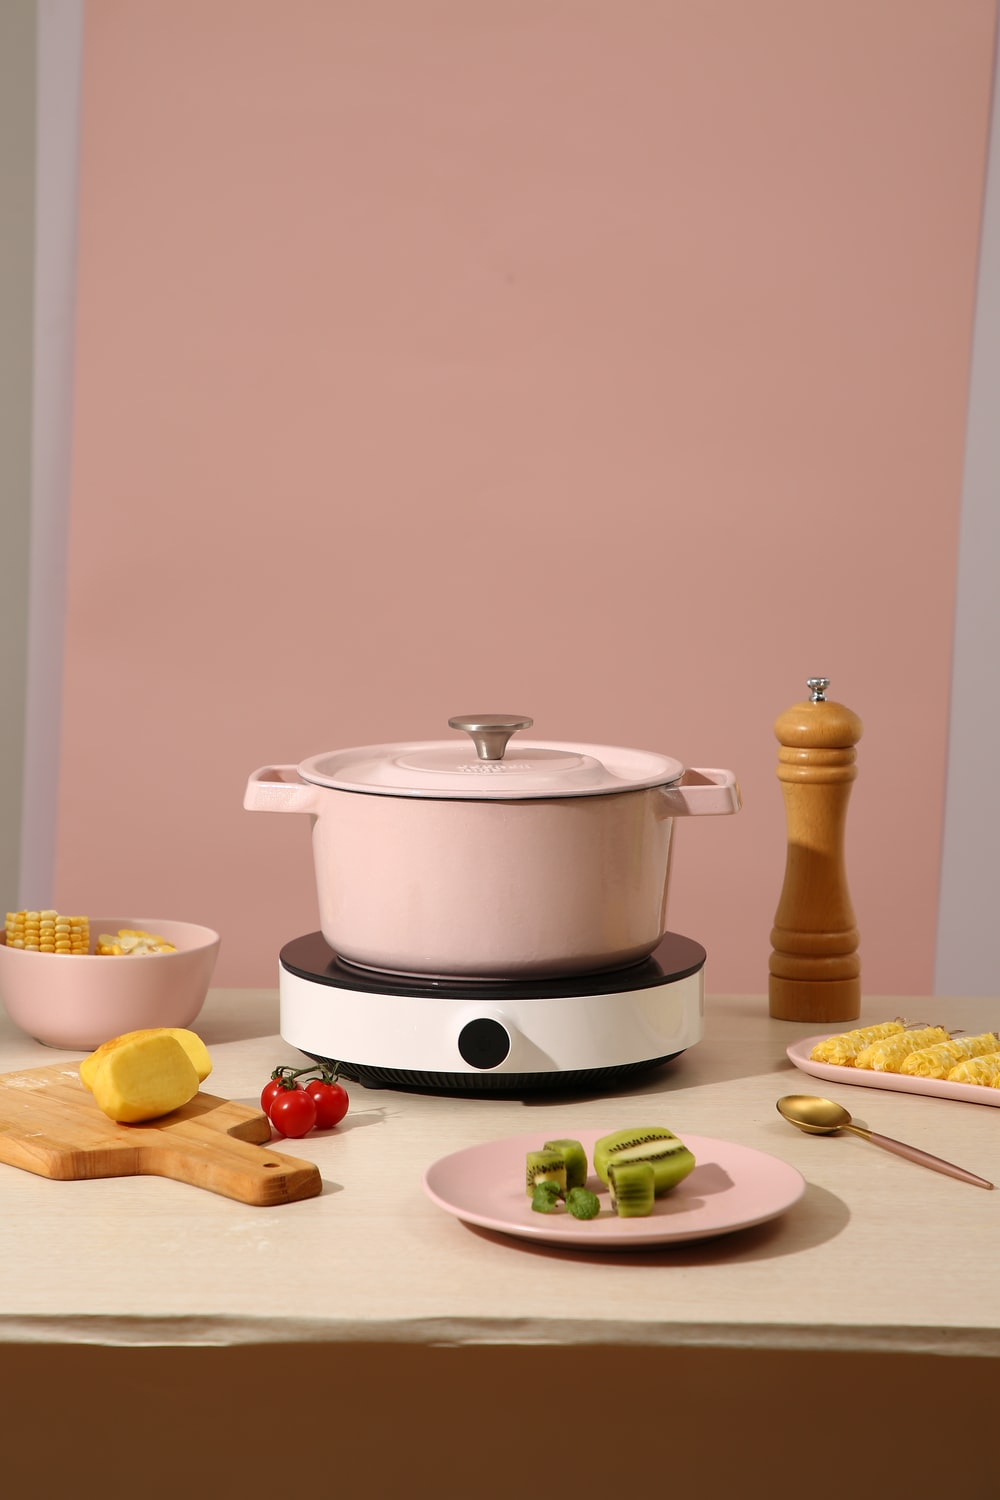 white rice cooker on brown wooden table